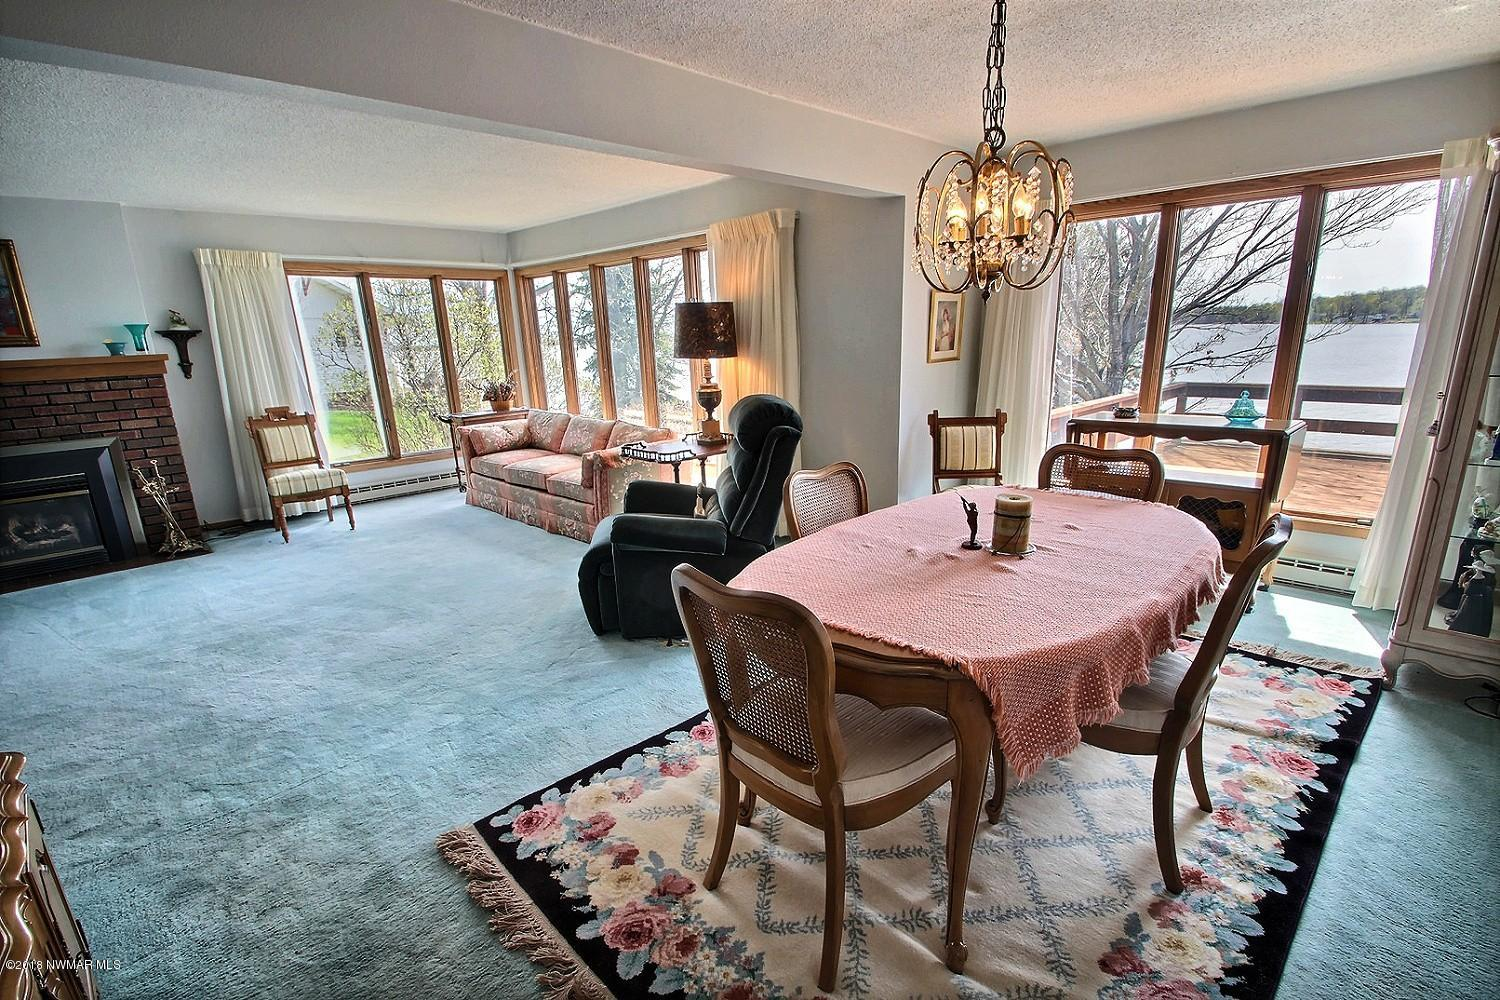 The main level has wonderful gathering spaces. The formal dining room opens to the living room, have plenty of space to spread out.